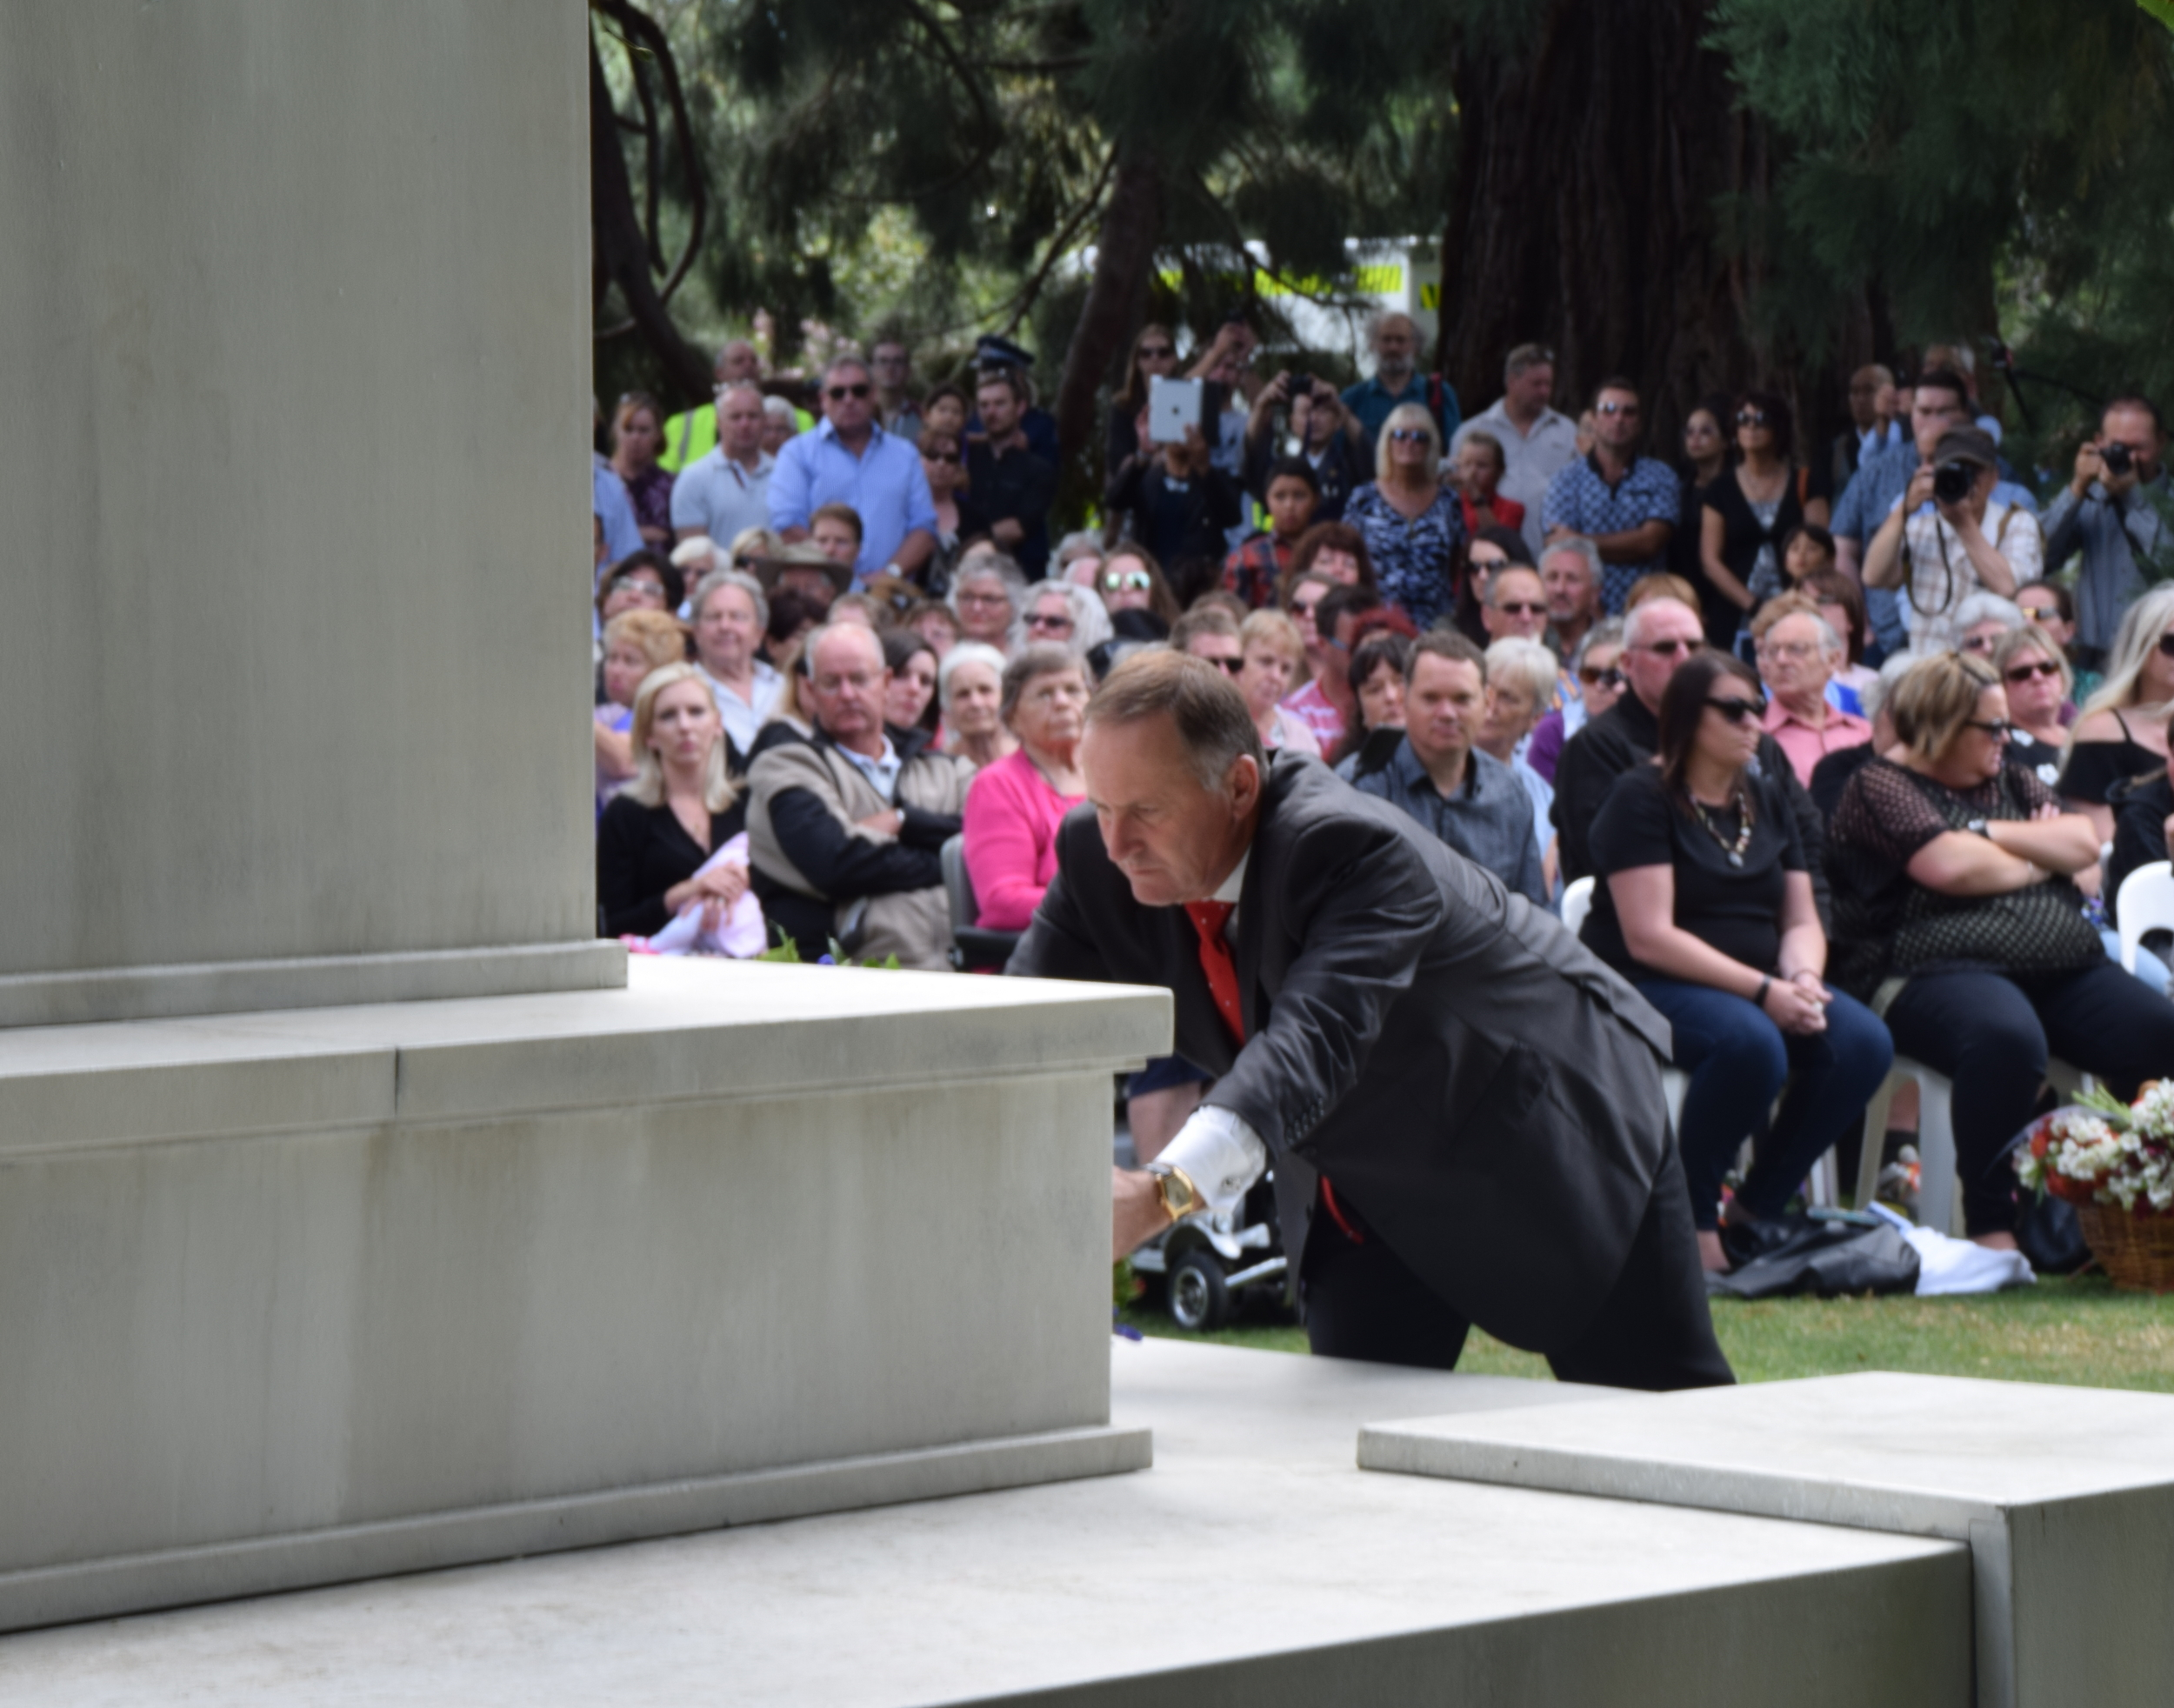 PM John Key led the nation in paying tributes to the victims